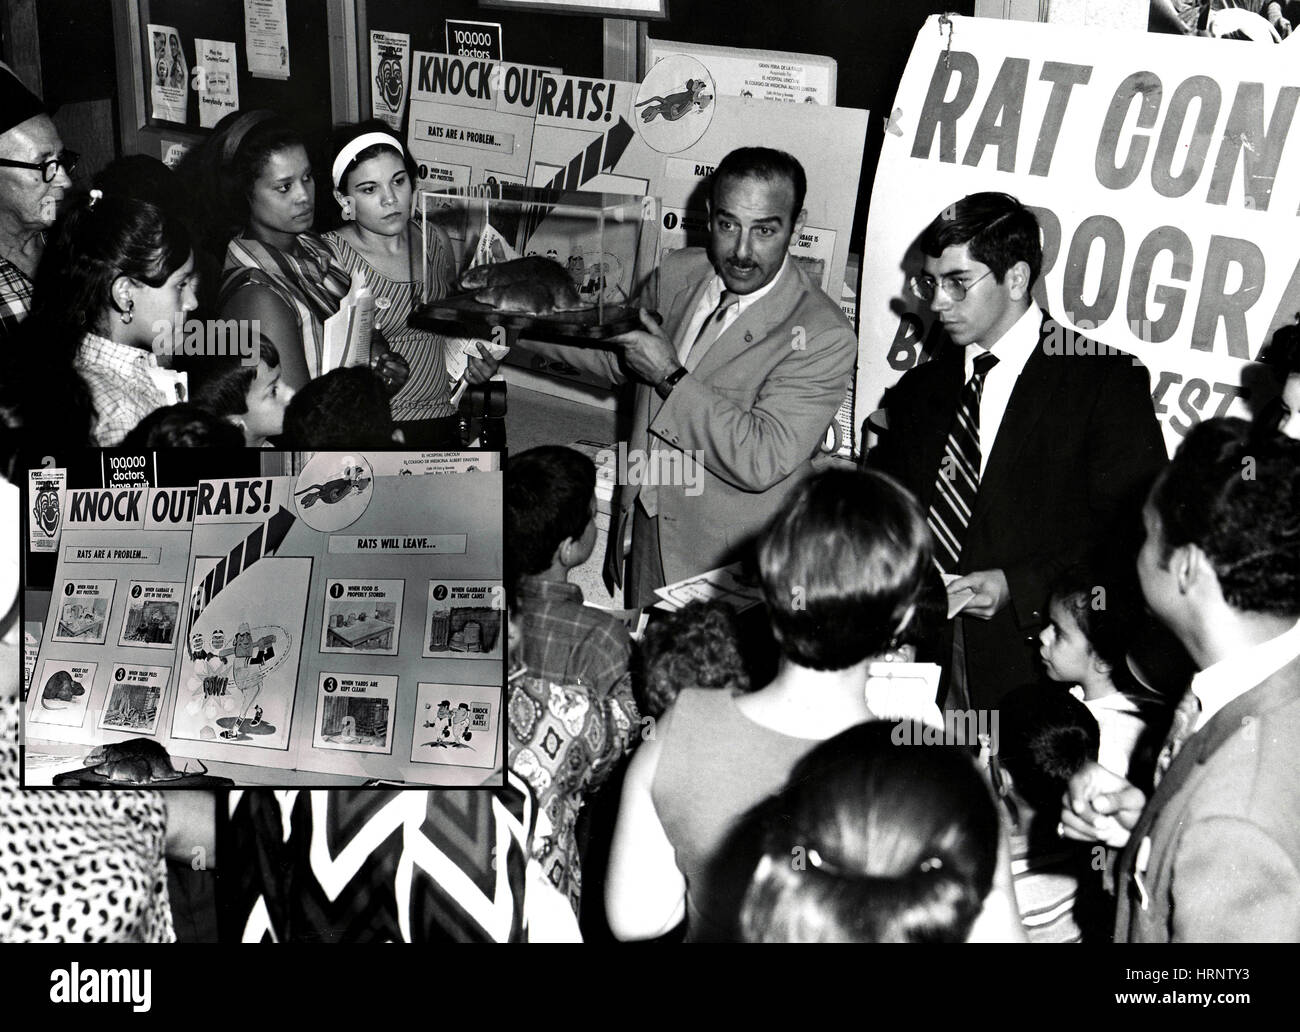 Campaign Against Rats, 1952 - Stock Image